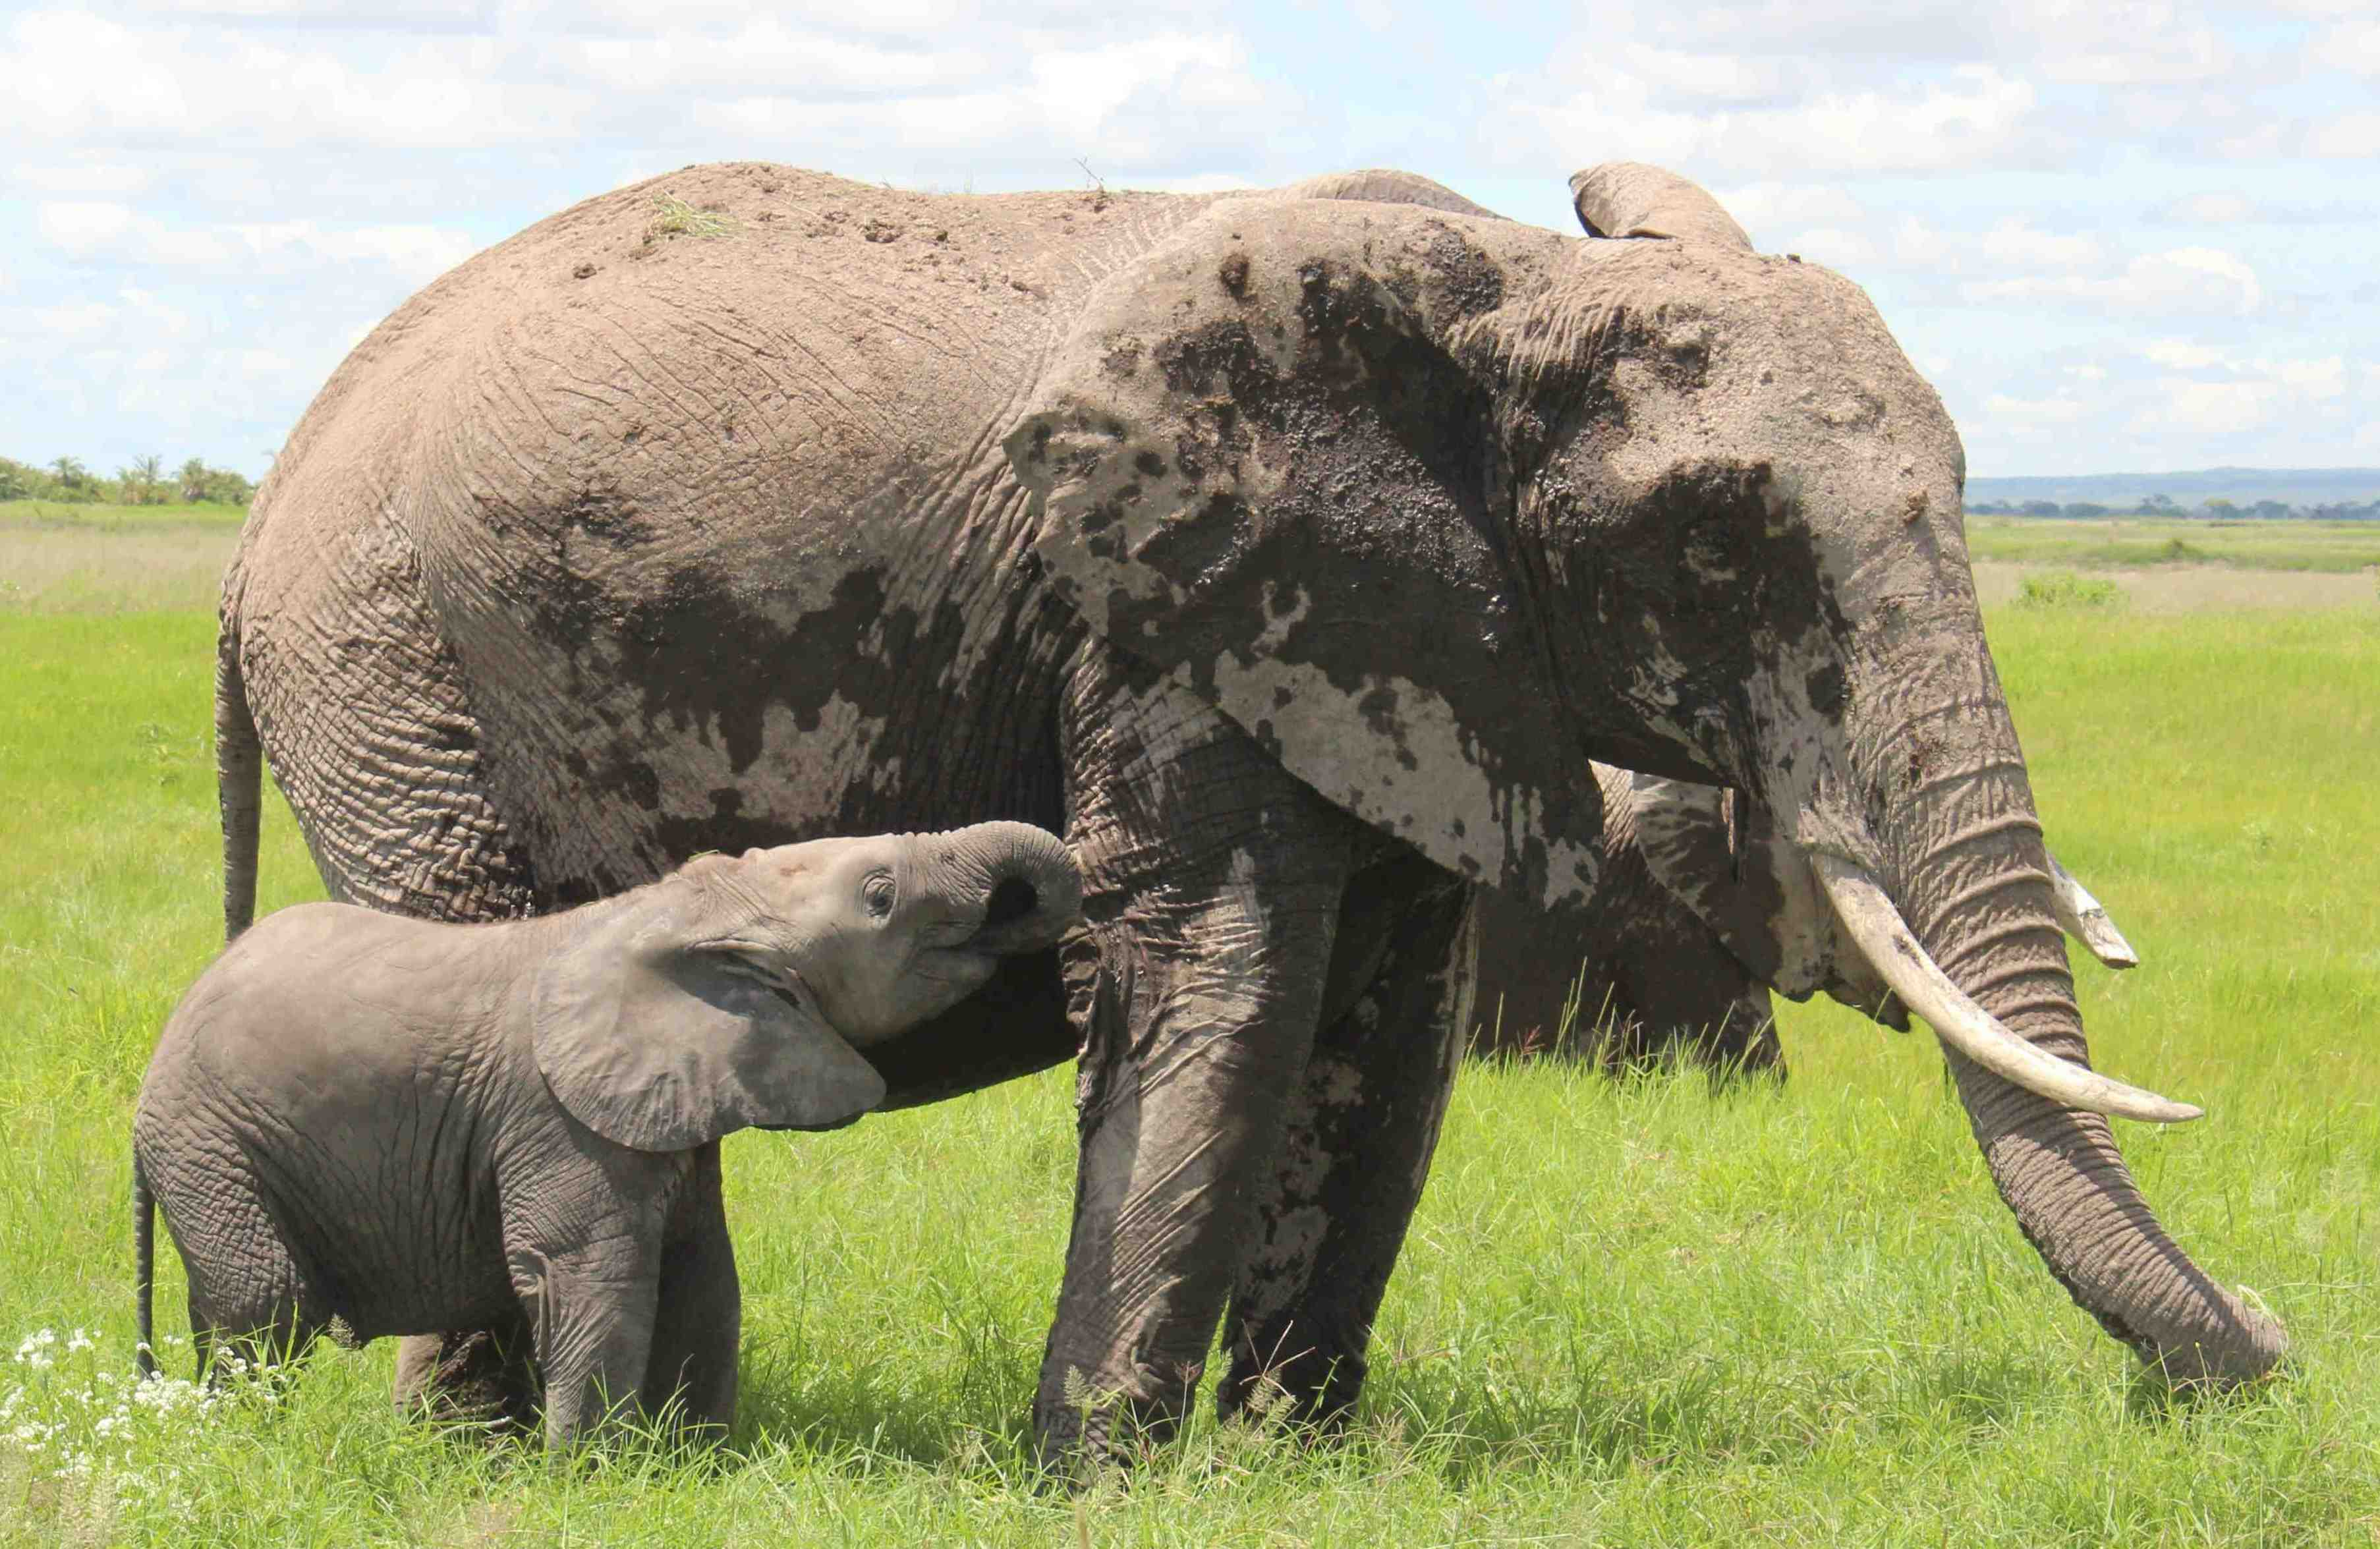 Elephant females stay with their mothers their whole lives, raised by a 'village' of aunts, sisters and grandmas in a tight family network